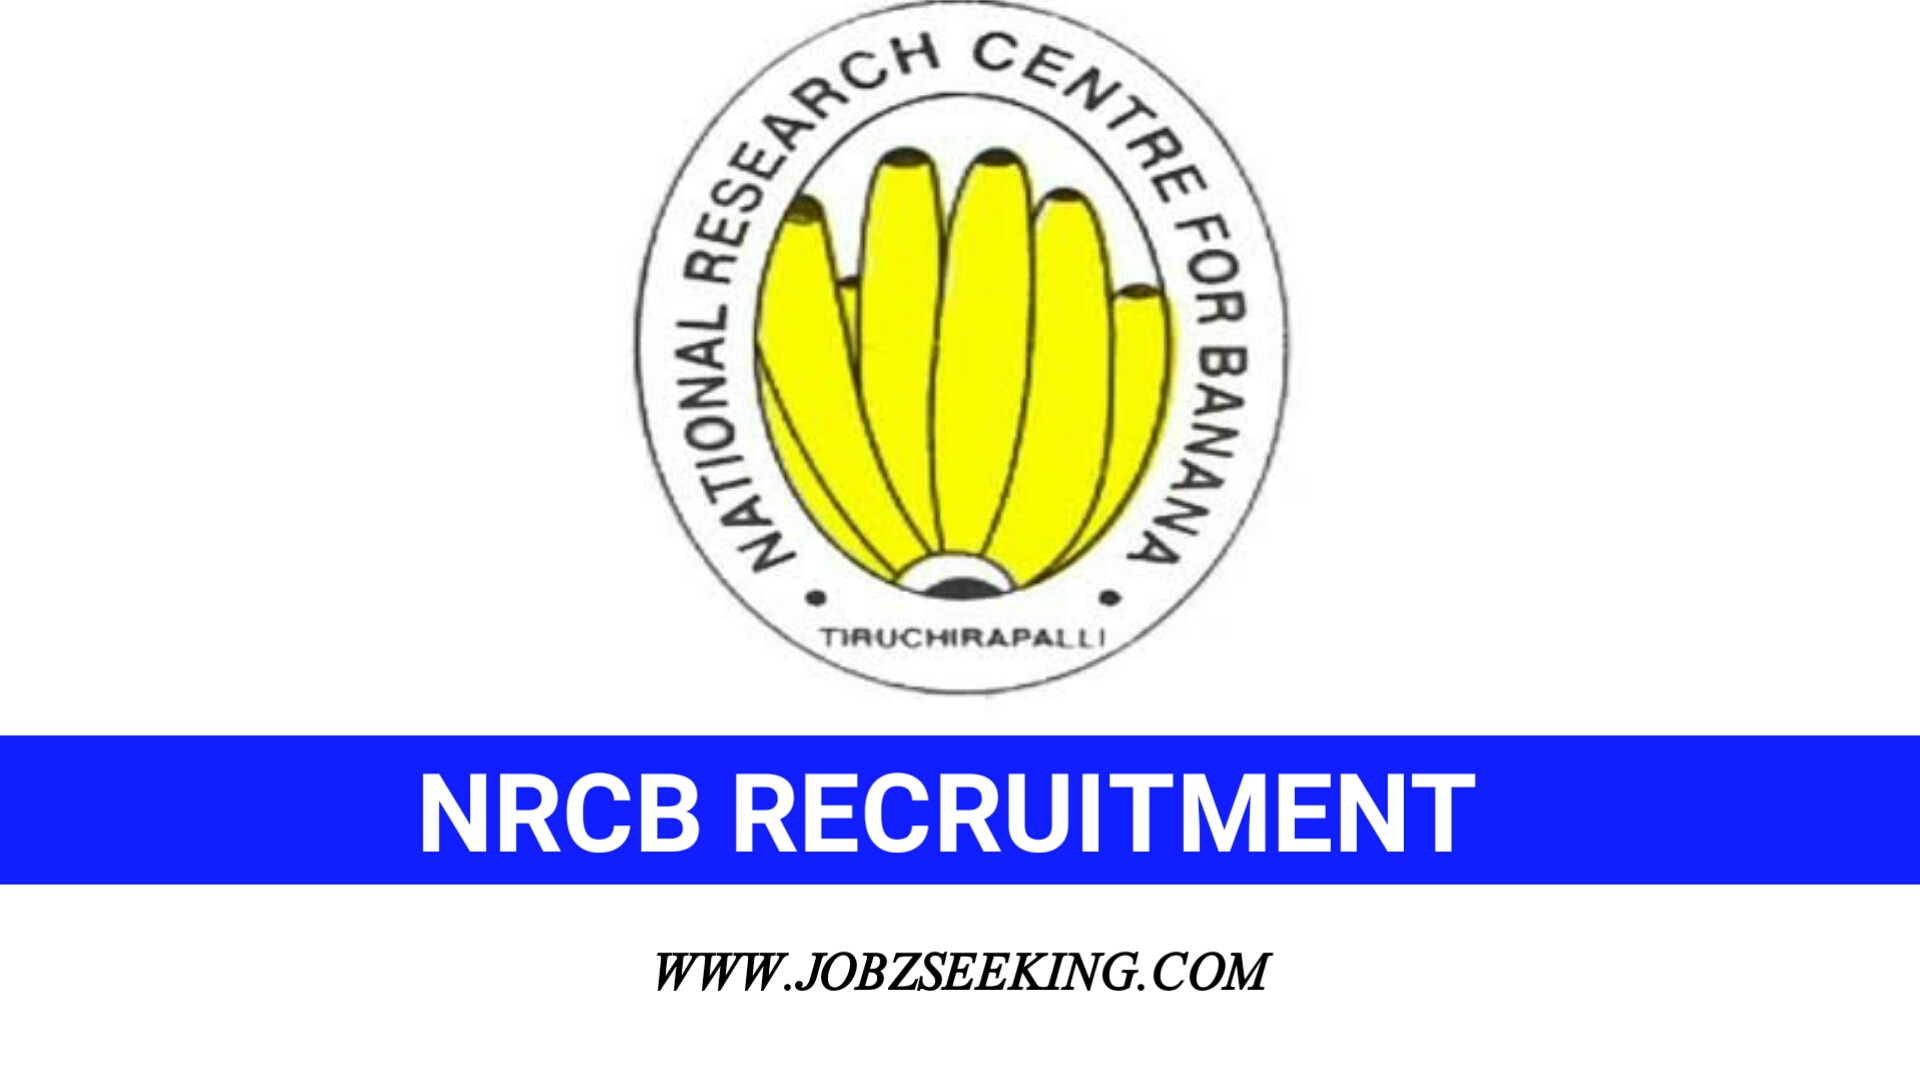 nrcb trichy recruitment 2020 1 young professional posts